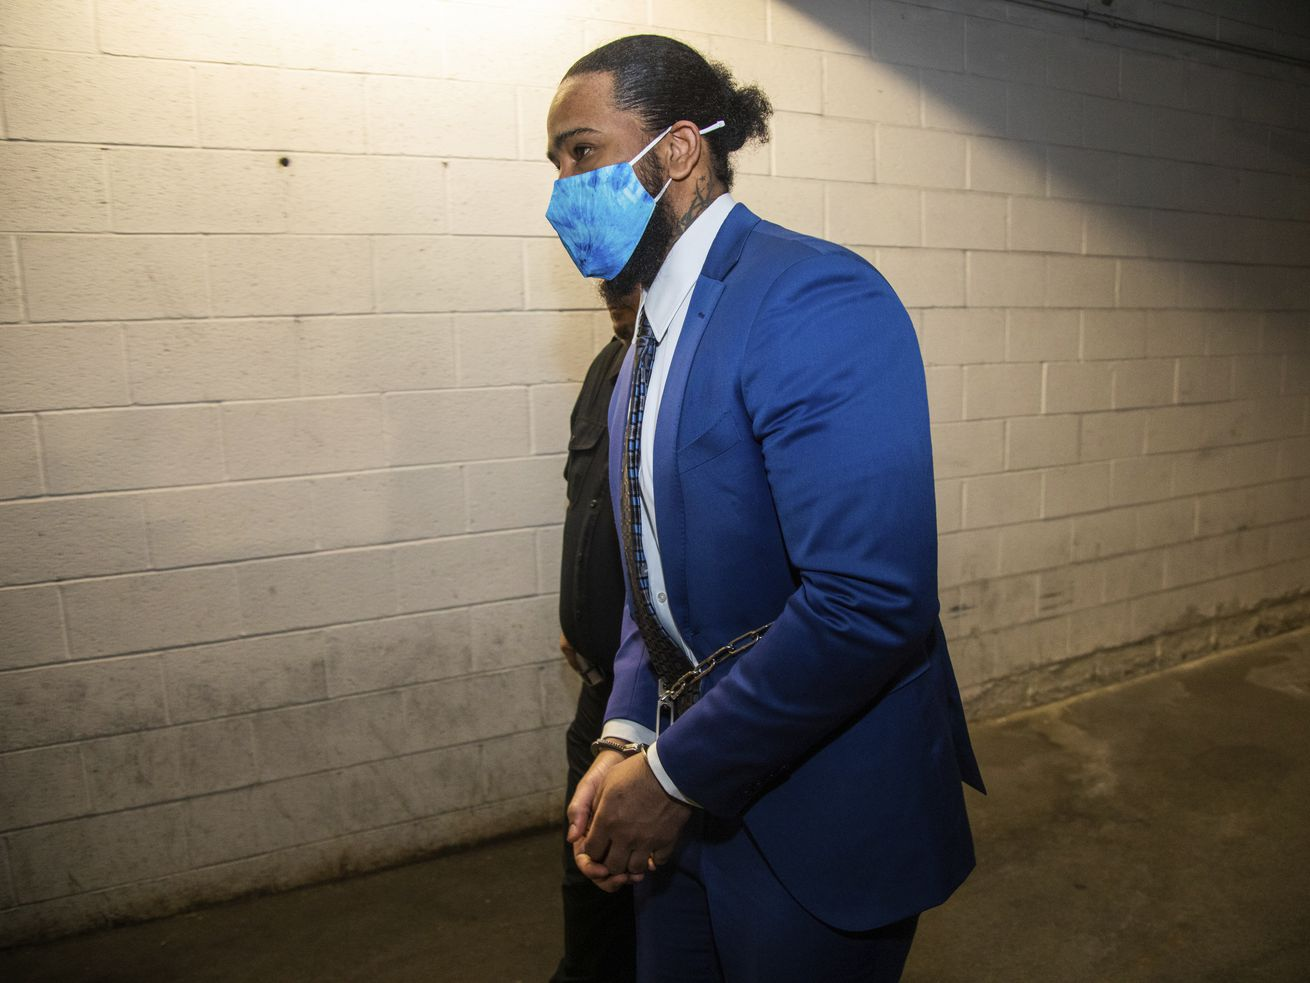 Former Pittsburgh Pirates pitcher Felipe Vazquez is led to the Westmoreland County Courthouse.